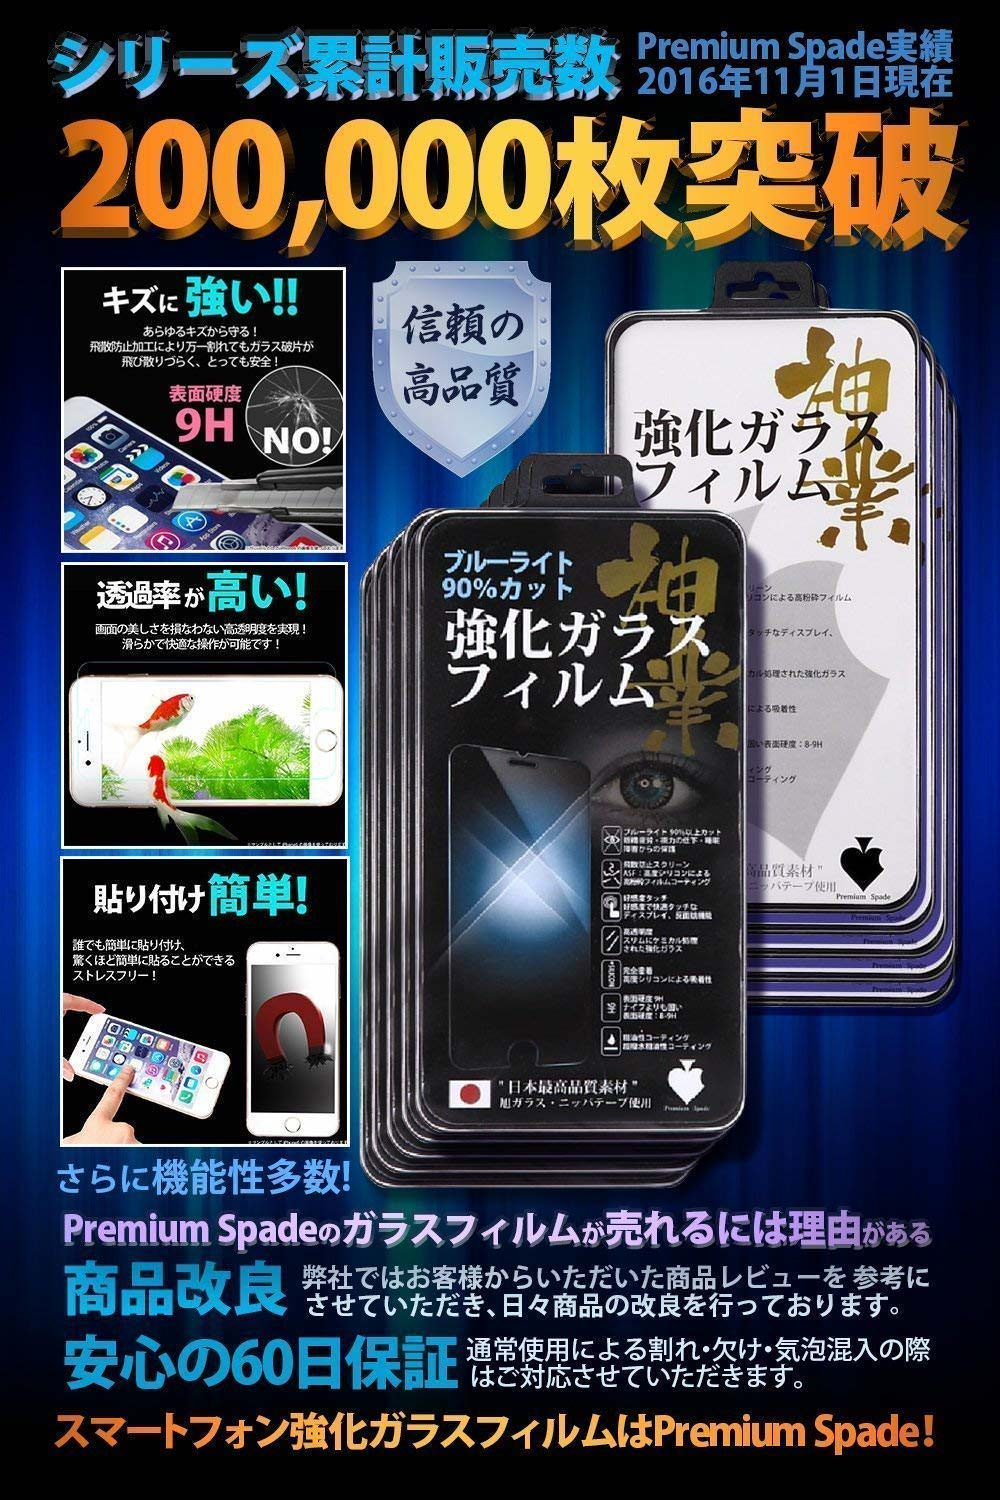 iPhone XSMax Xs X 8 8Plus 7 7Plus 6s 6 6s Plus 6Plus 液晶保護フィルム 強化ガラスフィルム 超薄0.26mm 9H アイフォン iphone xs max x xs